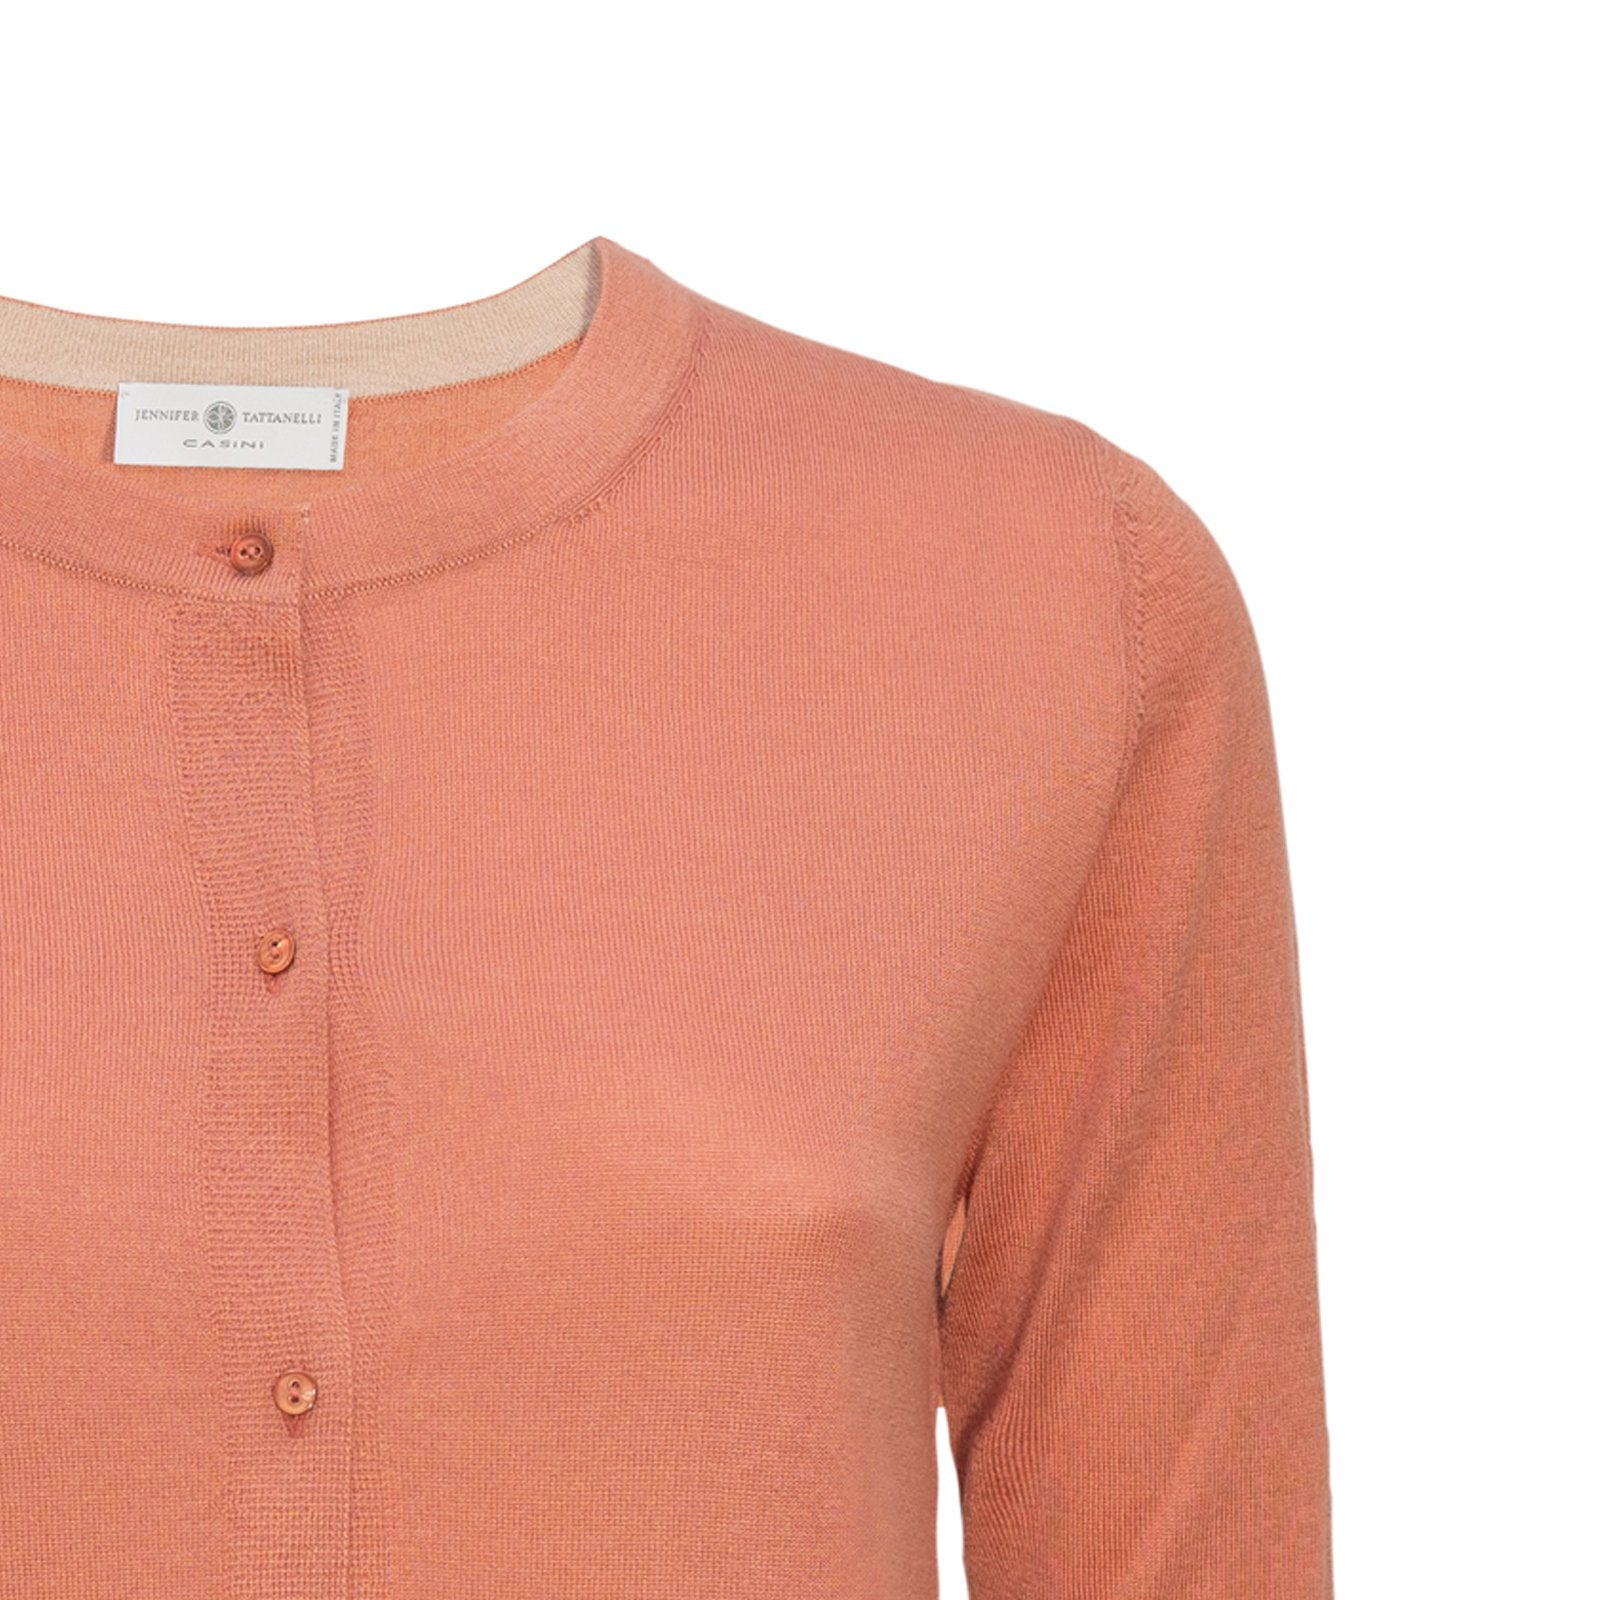 Women Terracotta Cardigan Knitwear PUR2112 - Jennifer Tattanelli